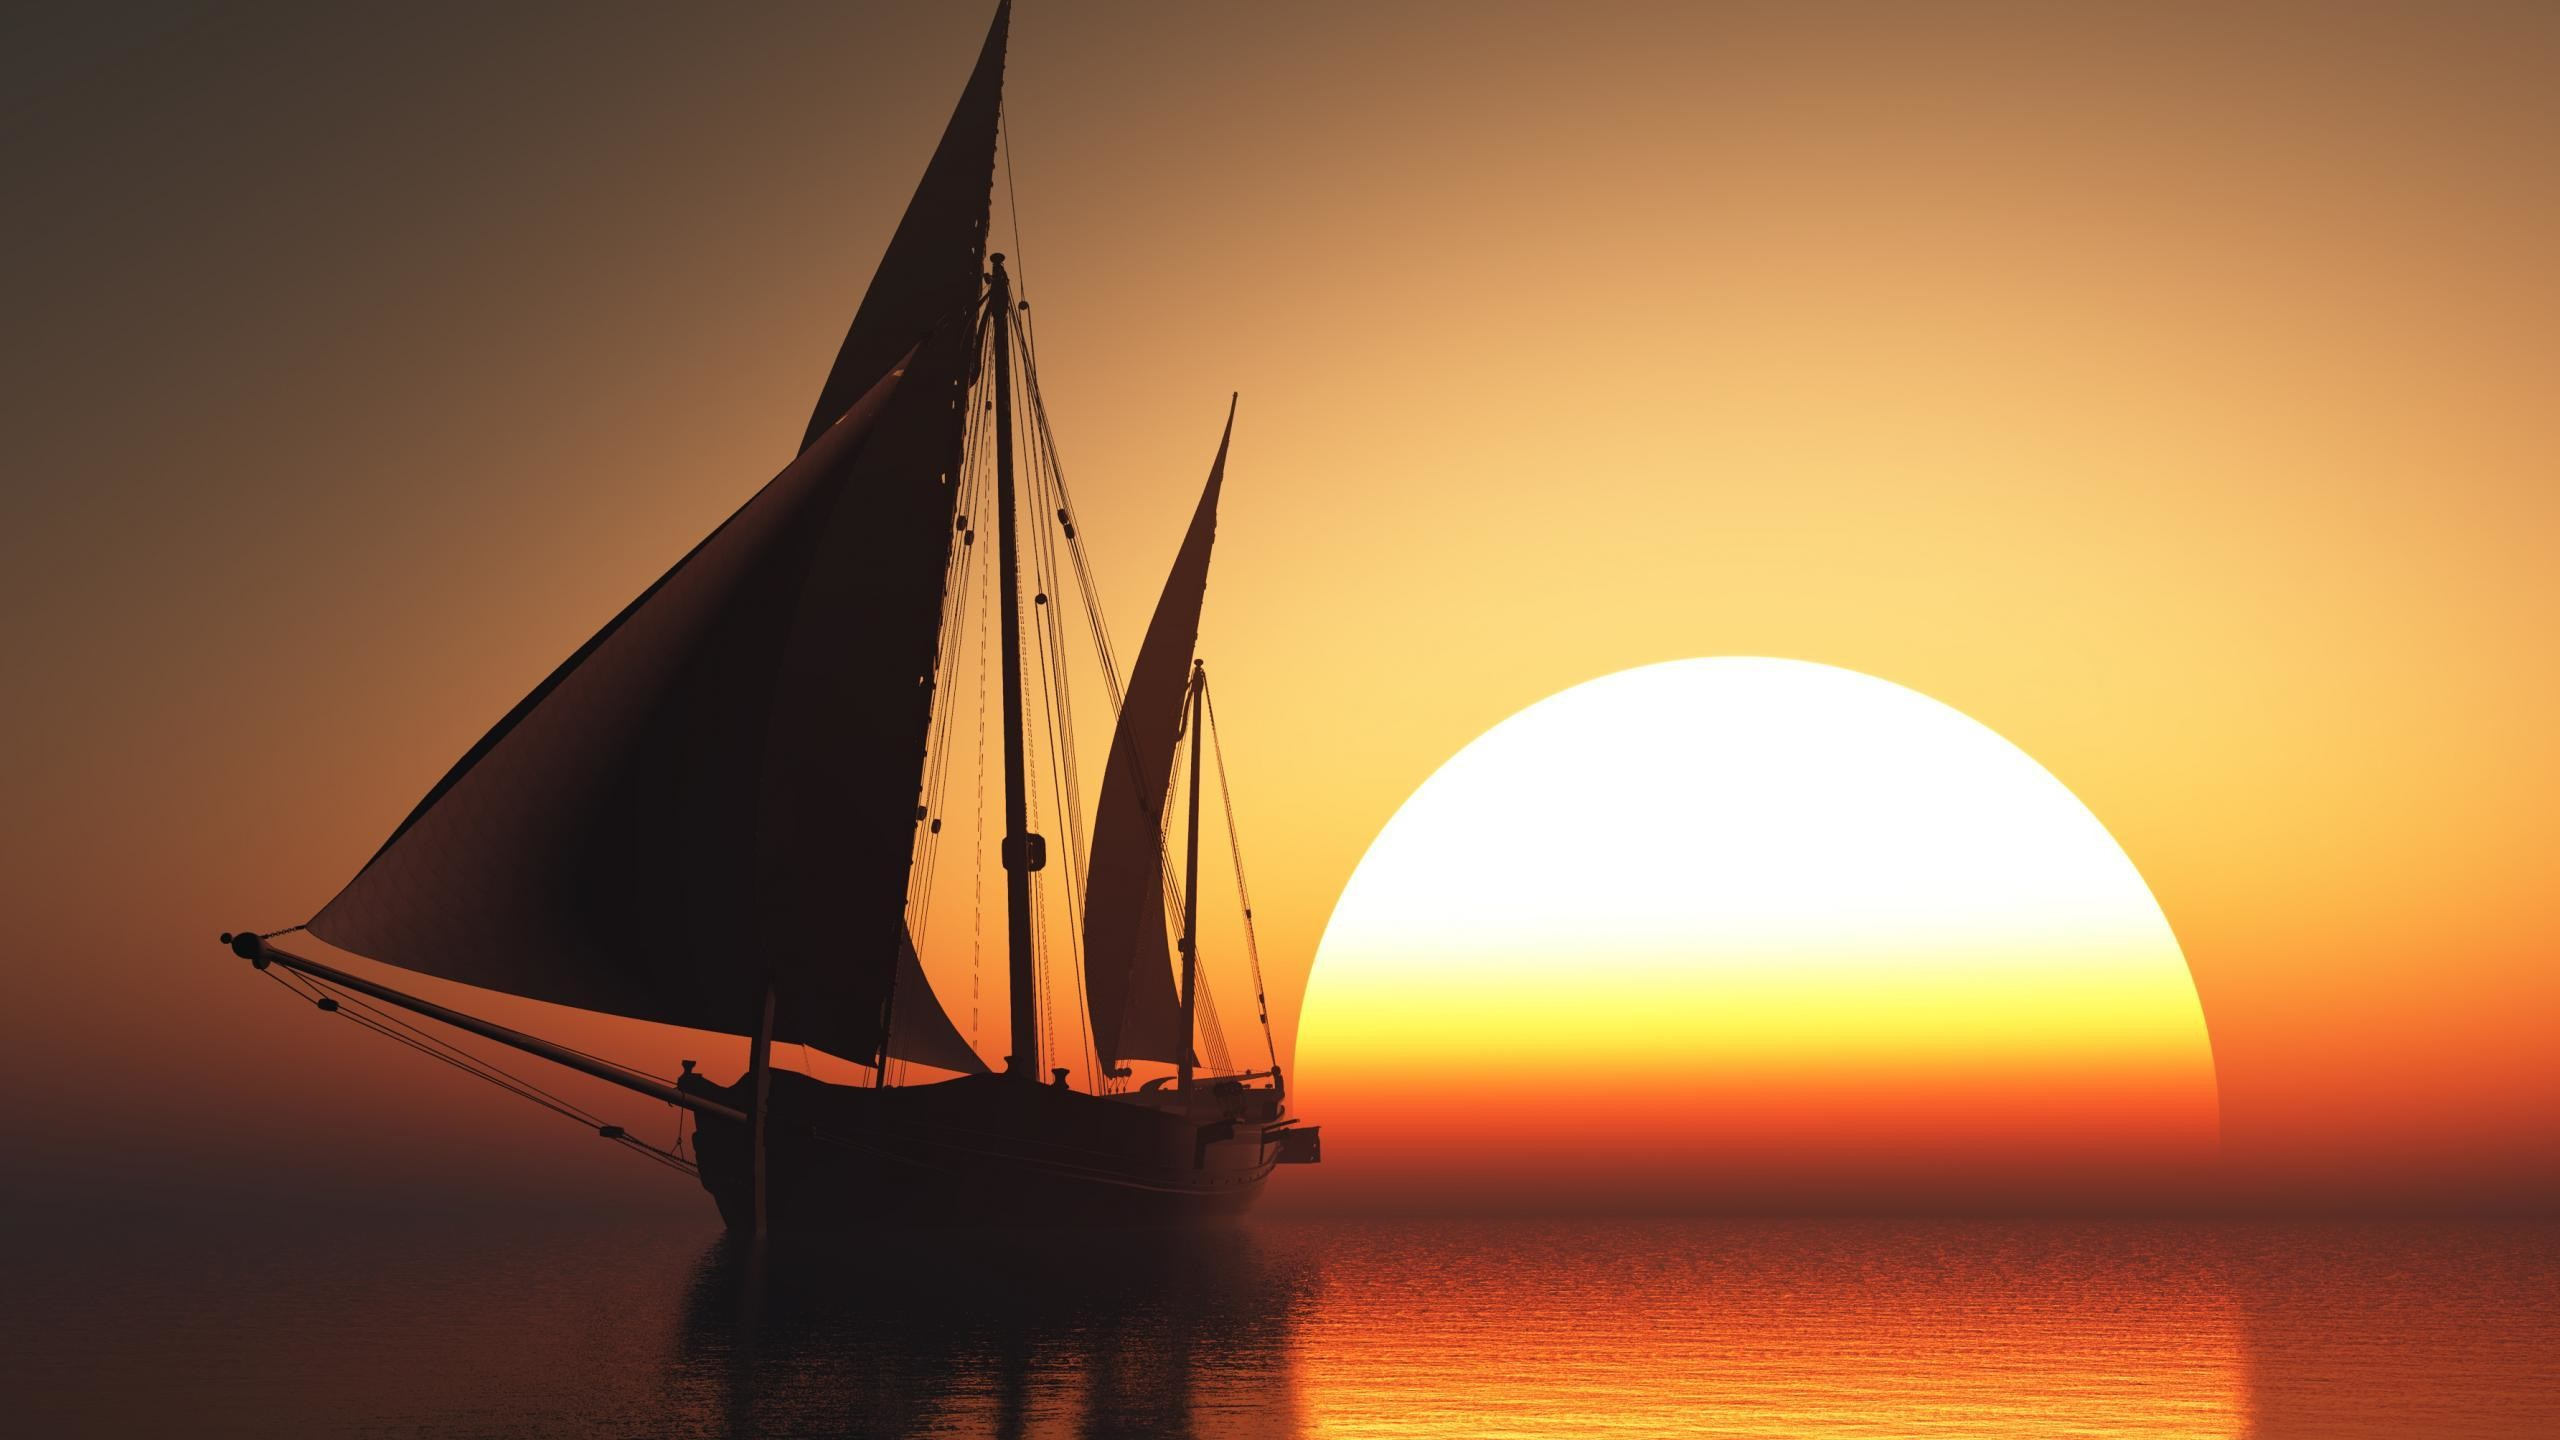 2560x1440 Sunrise Sea Ocean Sunset Sailboat Wallpapers